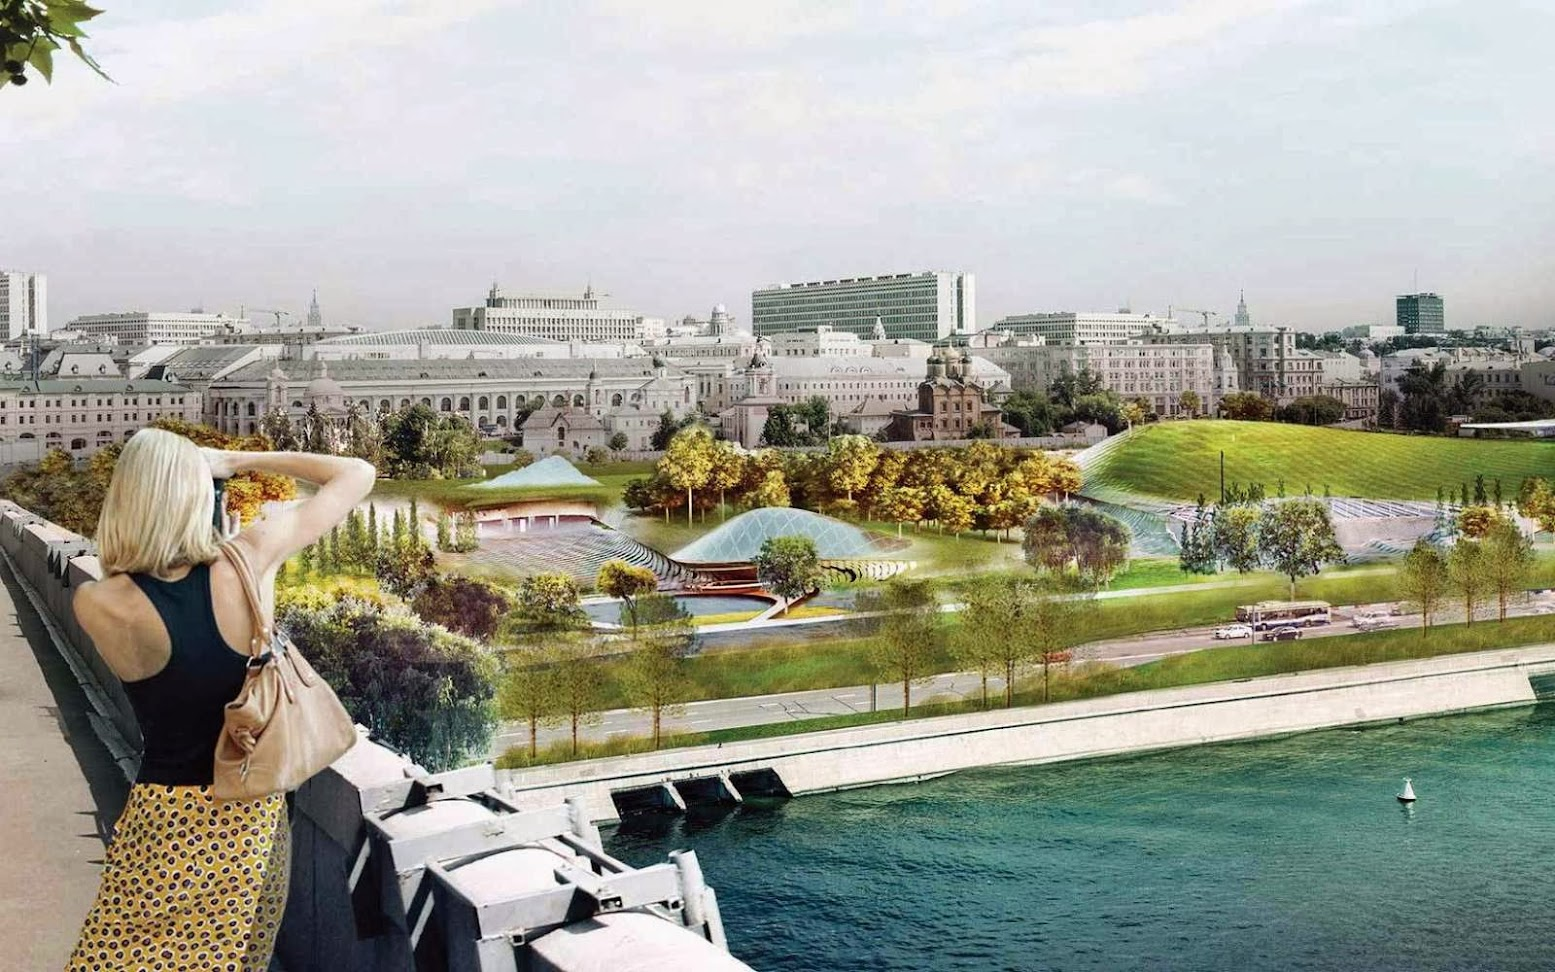 Mosca, Russia: [DILLER SCOFIDIO + RENFRO WINS ZARYADYE PARK COMPETITION]